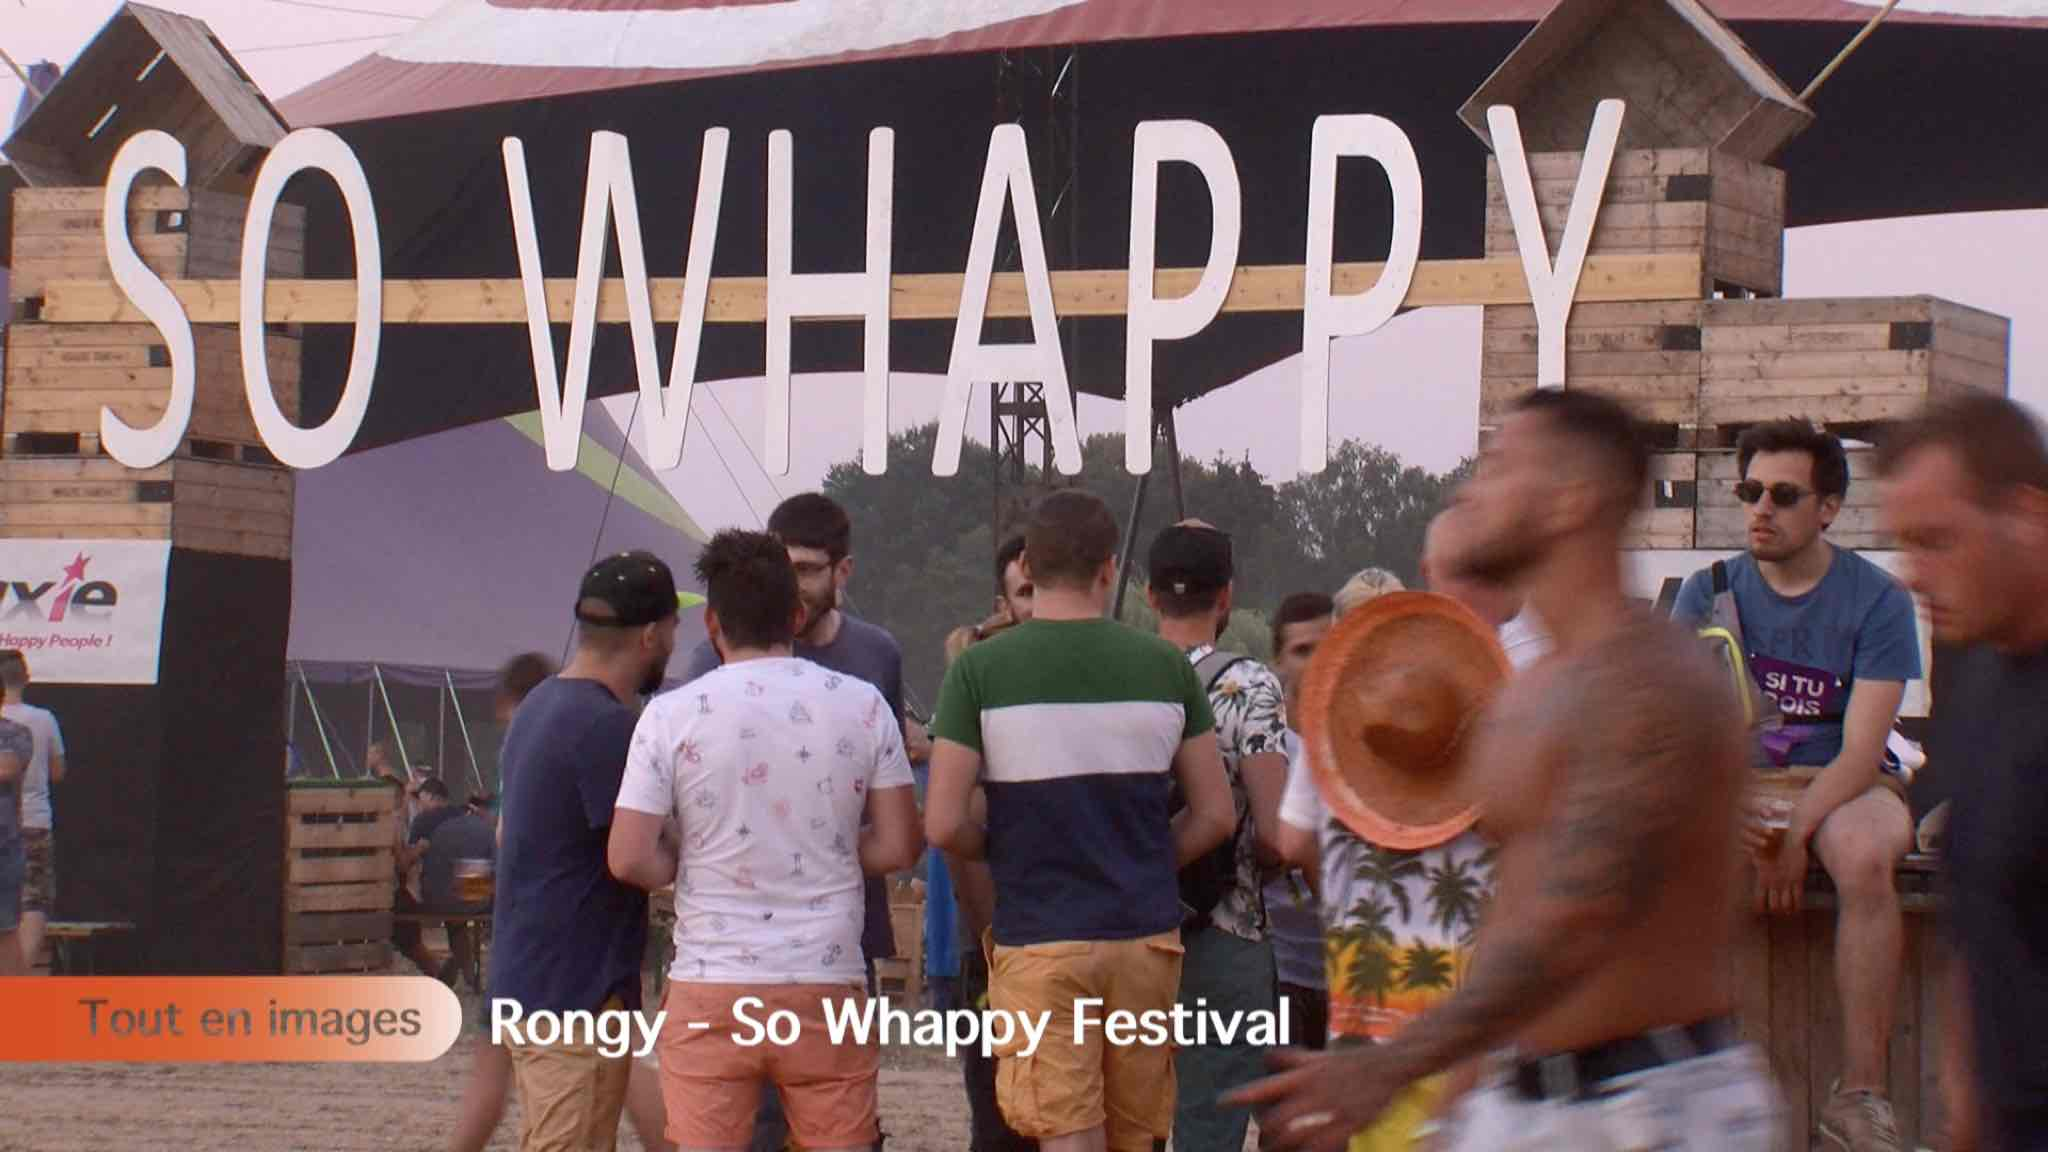 So Whappy Festival